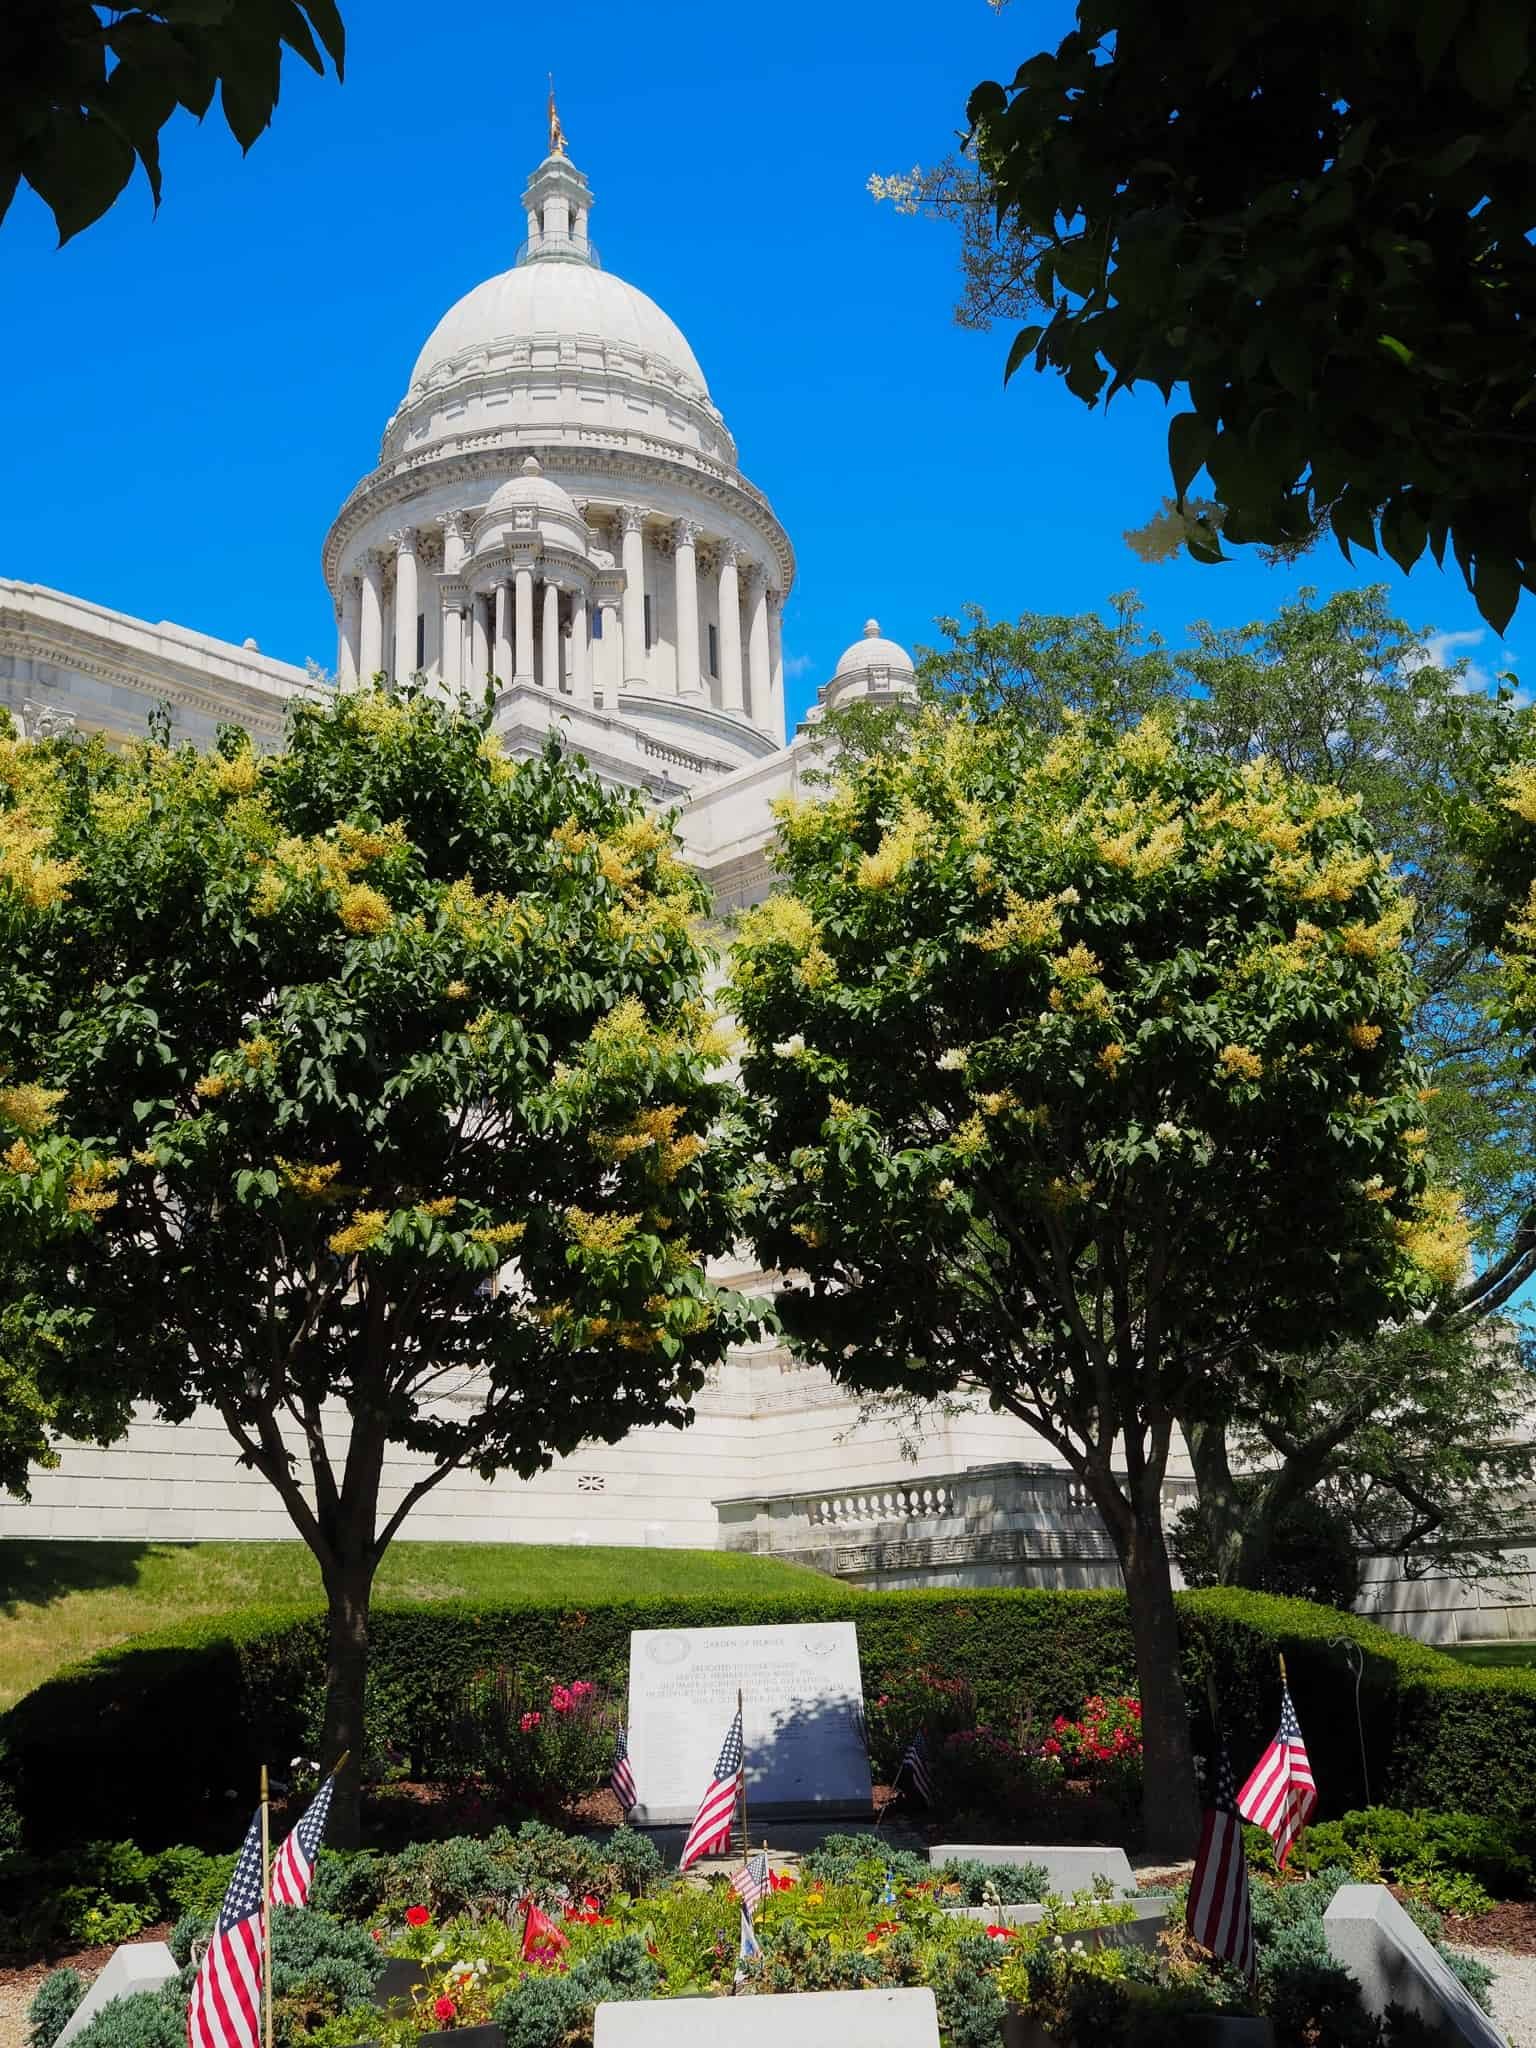 Rhode Island's State Capital in Providence